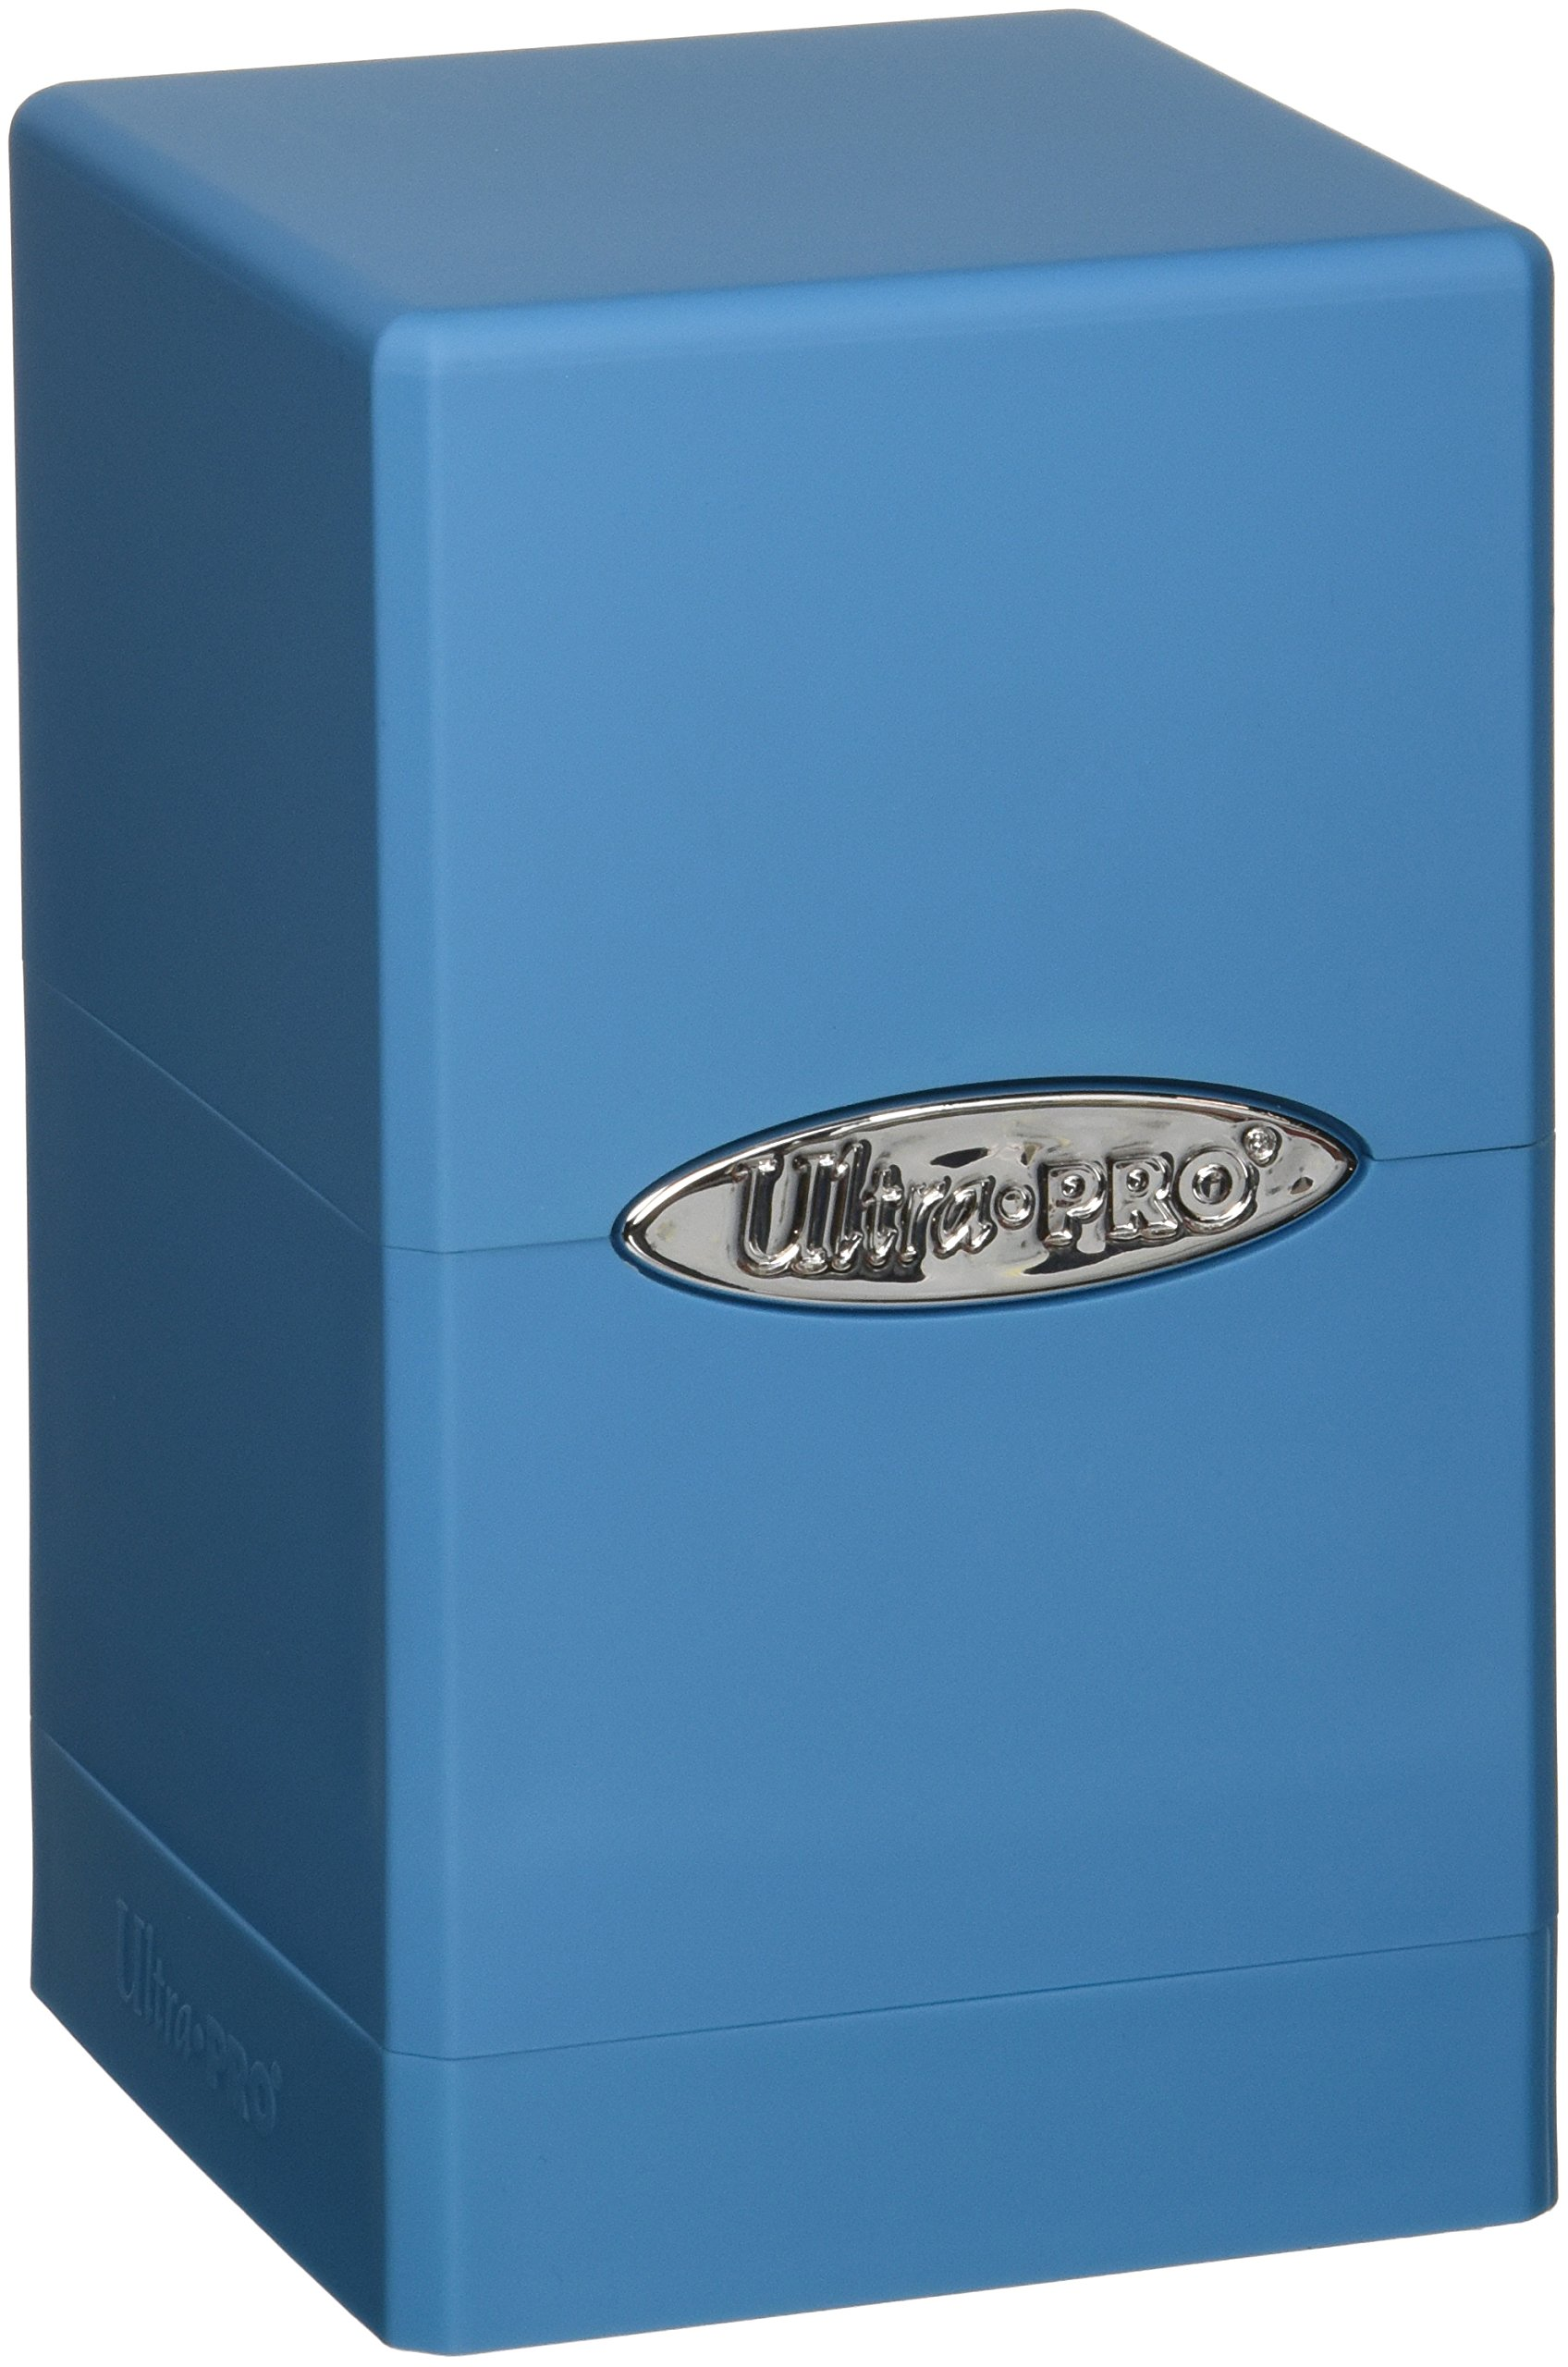 Light Blue Satin Tower Deck Boxes by Ultra Pro